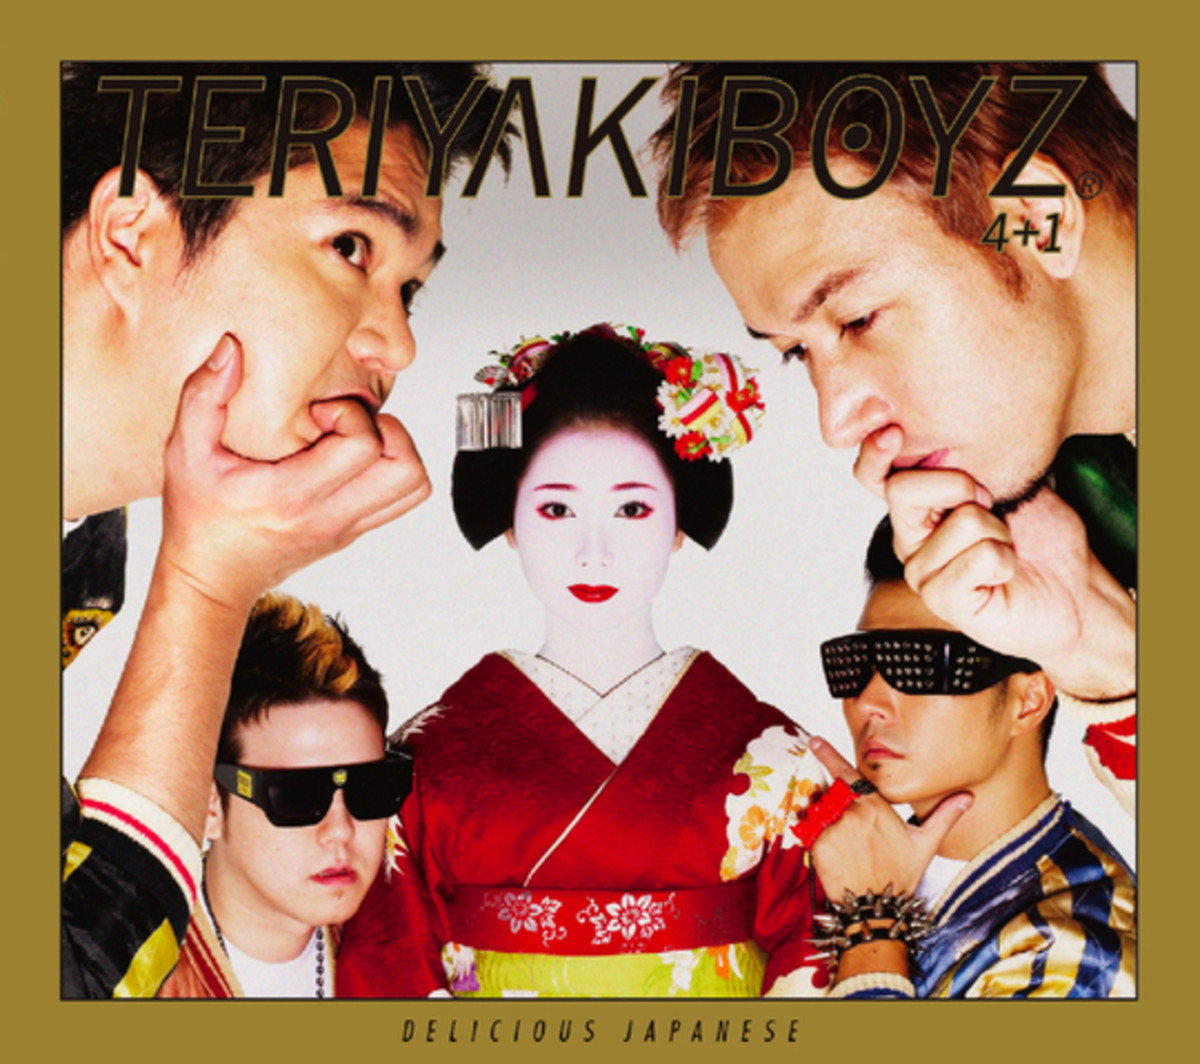 teriyaki_boyz_delicious_japanese_1